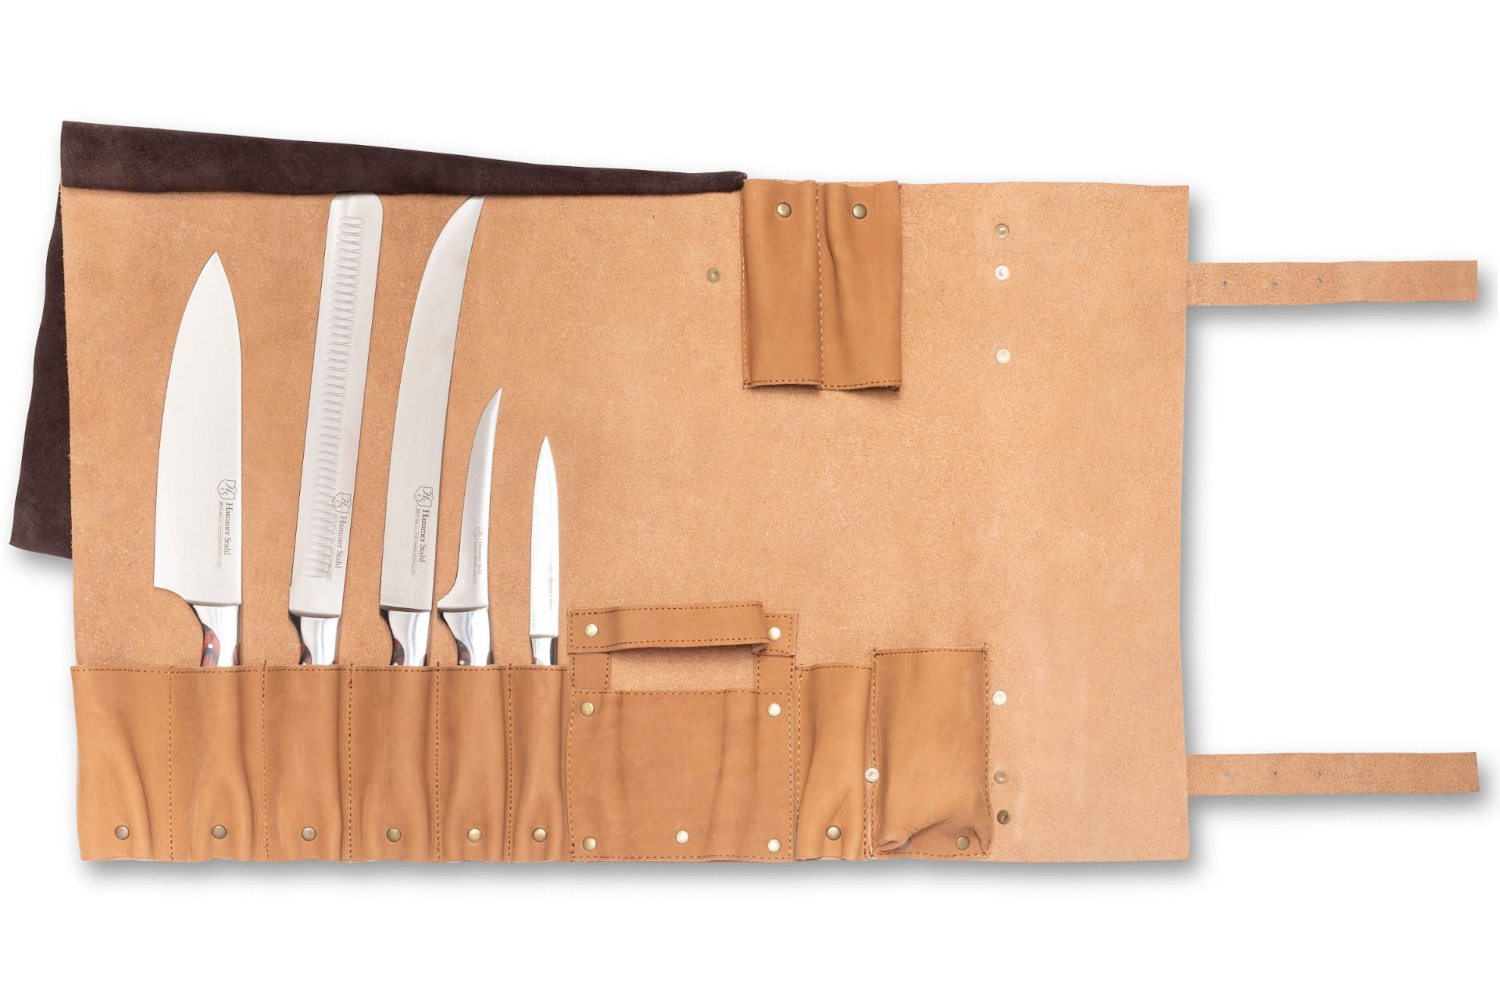 Hammer Stahl 6 Piece Barbecue Knife Set